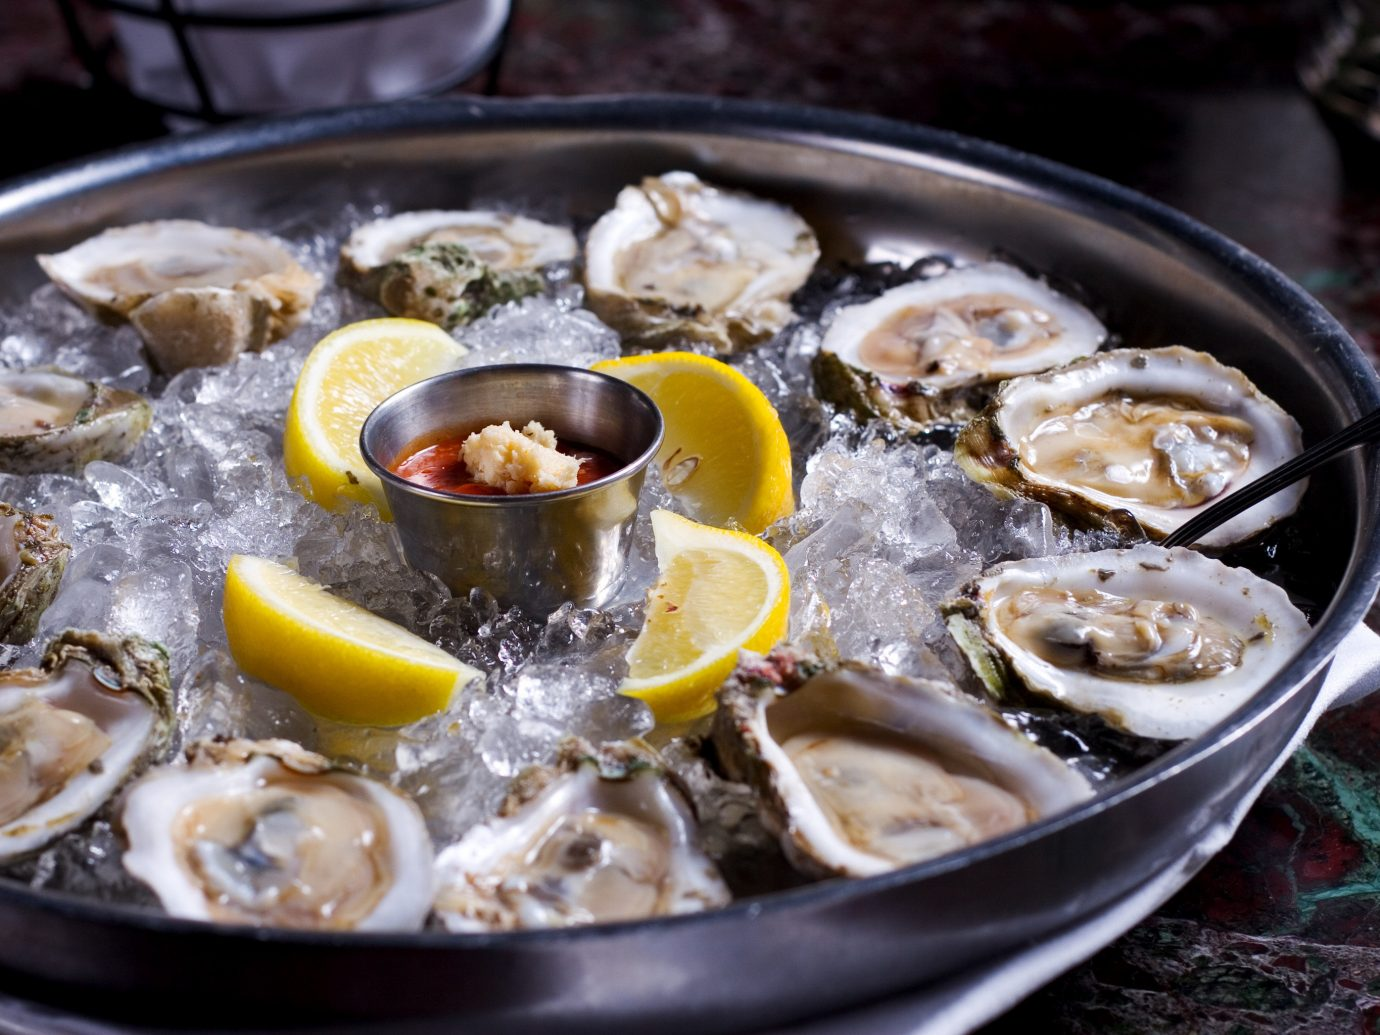 Food + Drink food oyster Seafood clams oysters mussels and scallops dish animal source foods clam meal recipe pan